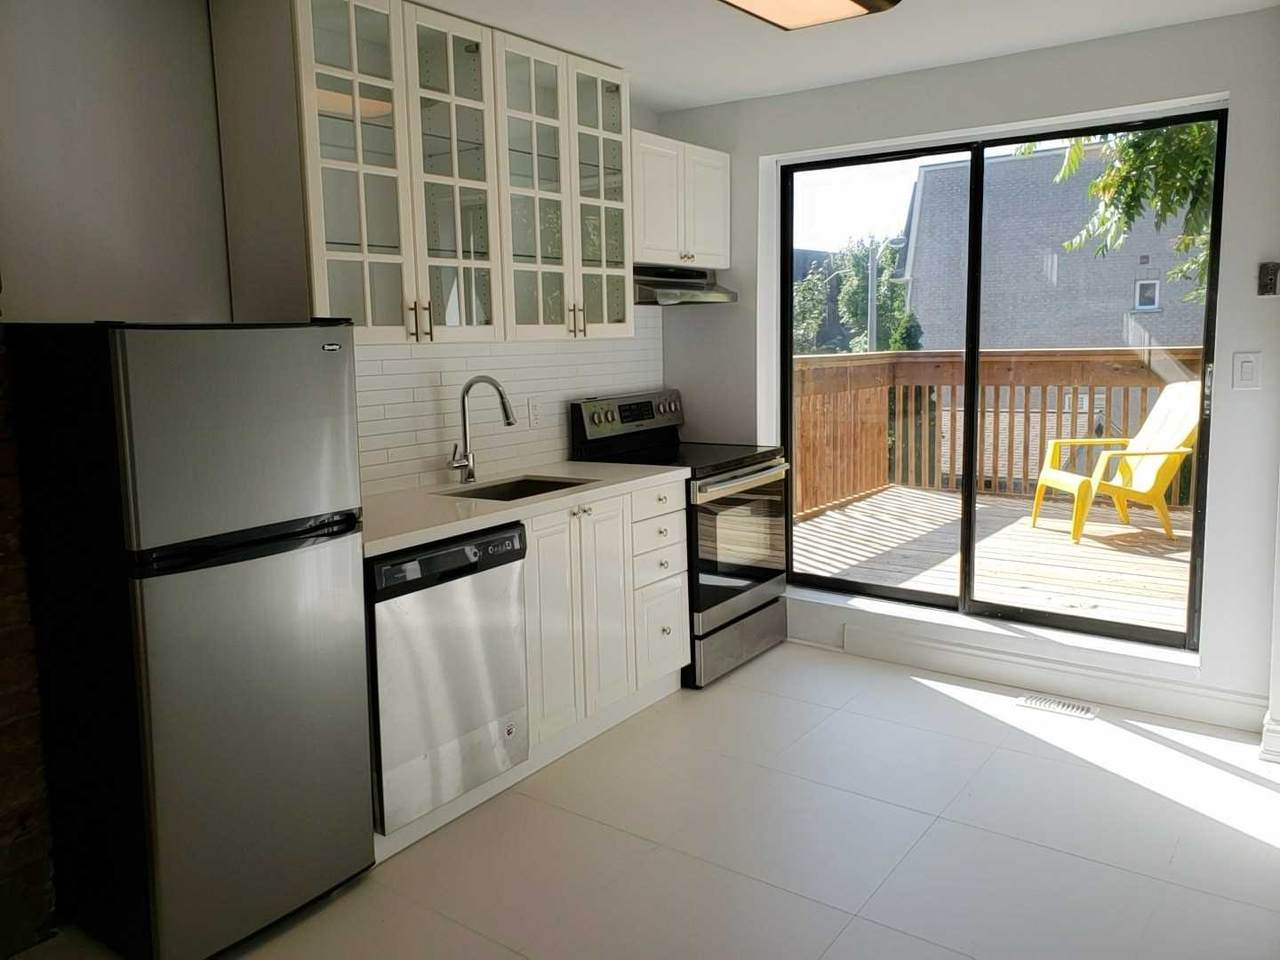 281 Wallace Ave - Photo 1